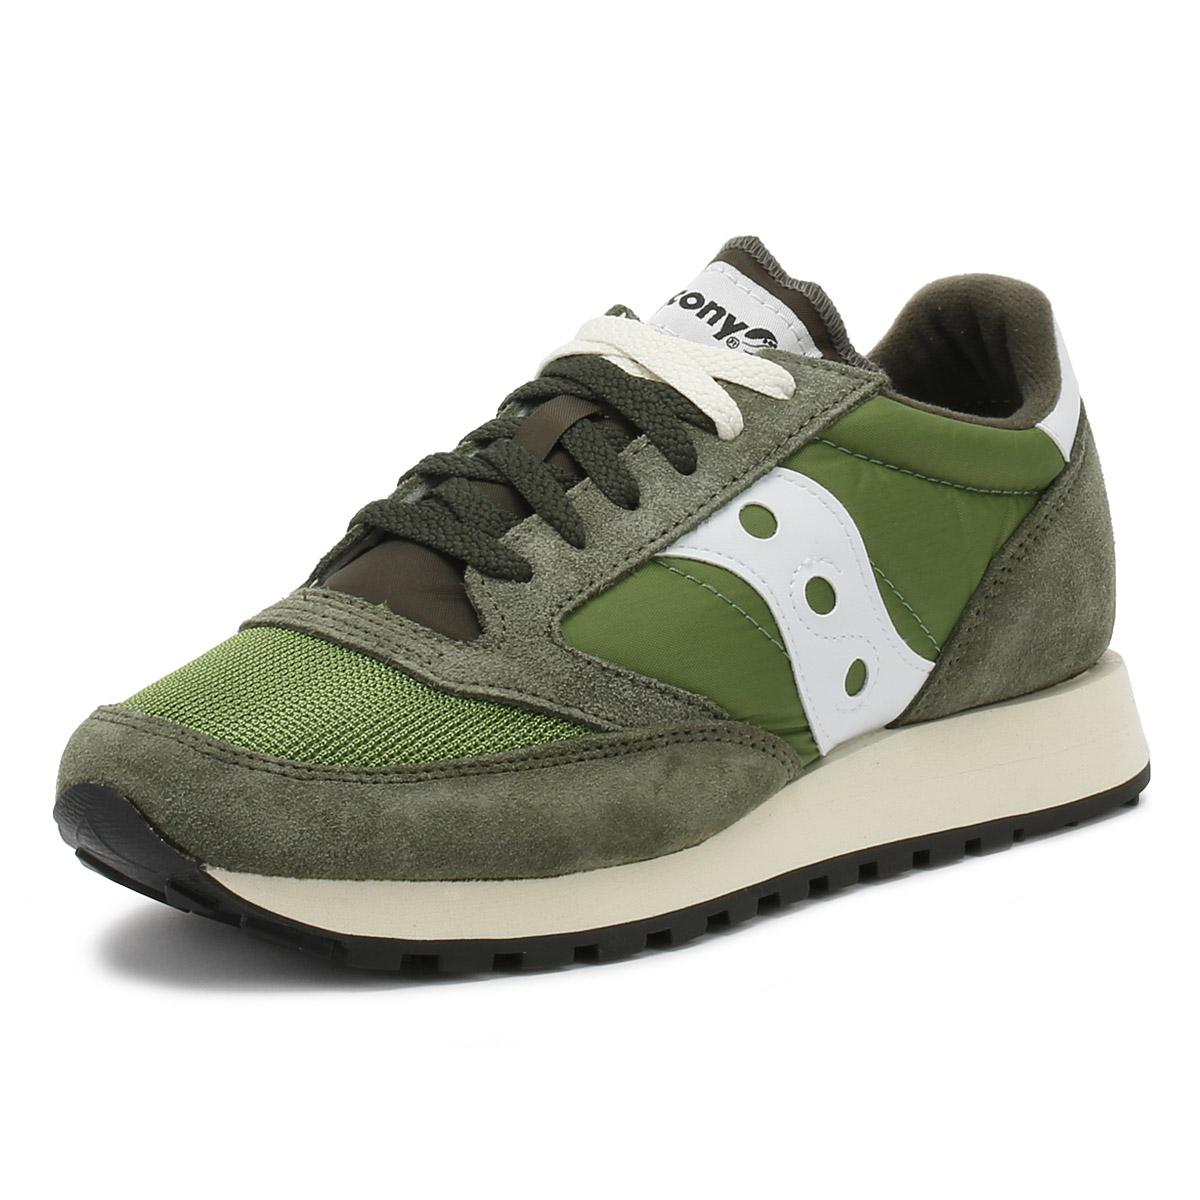 2a1eb4dcf Saucony - Mens Olive Green   Grey Jazz Original Vintage Trainers for Men -  Lyst. View fullscreen